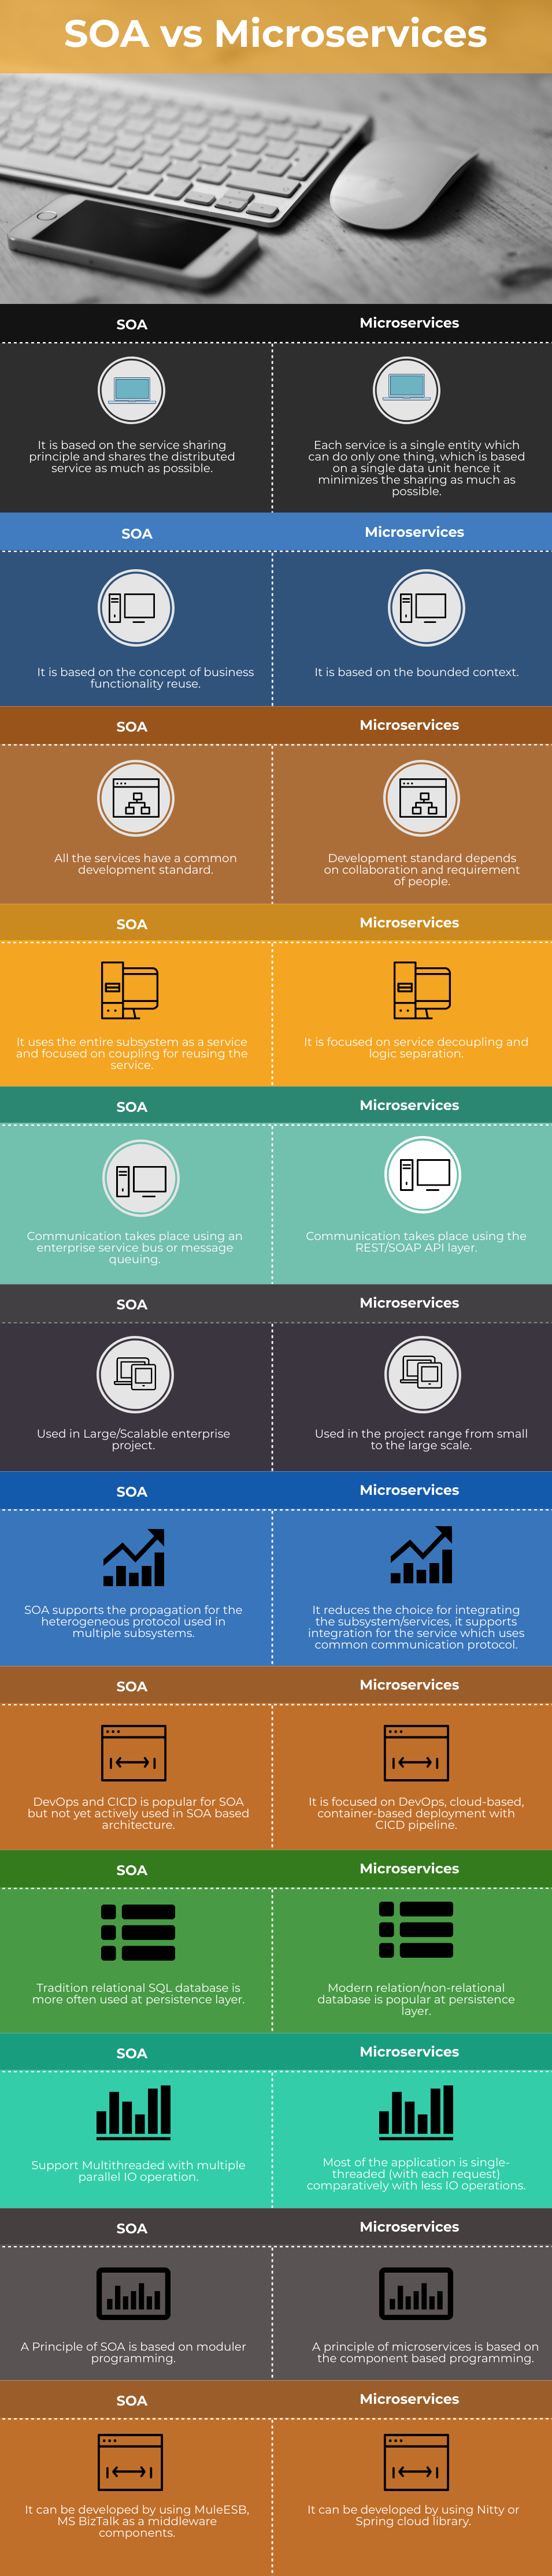 SOA vs Microservices Info